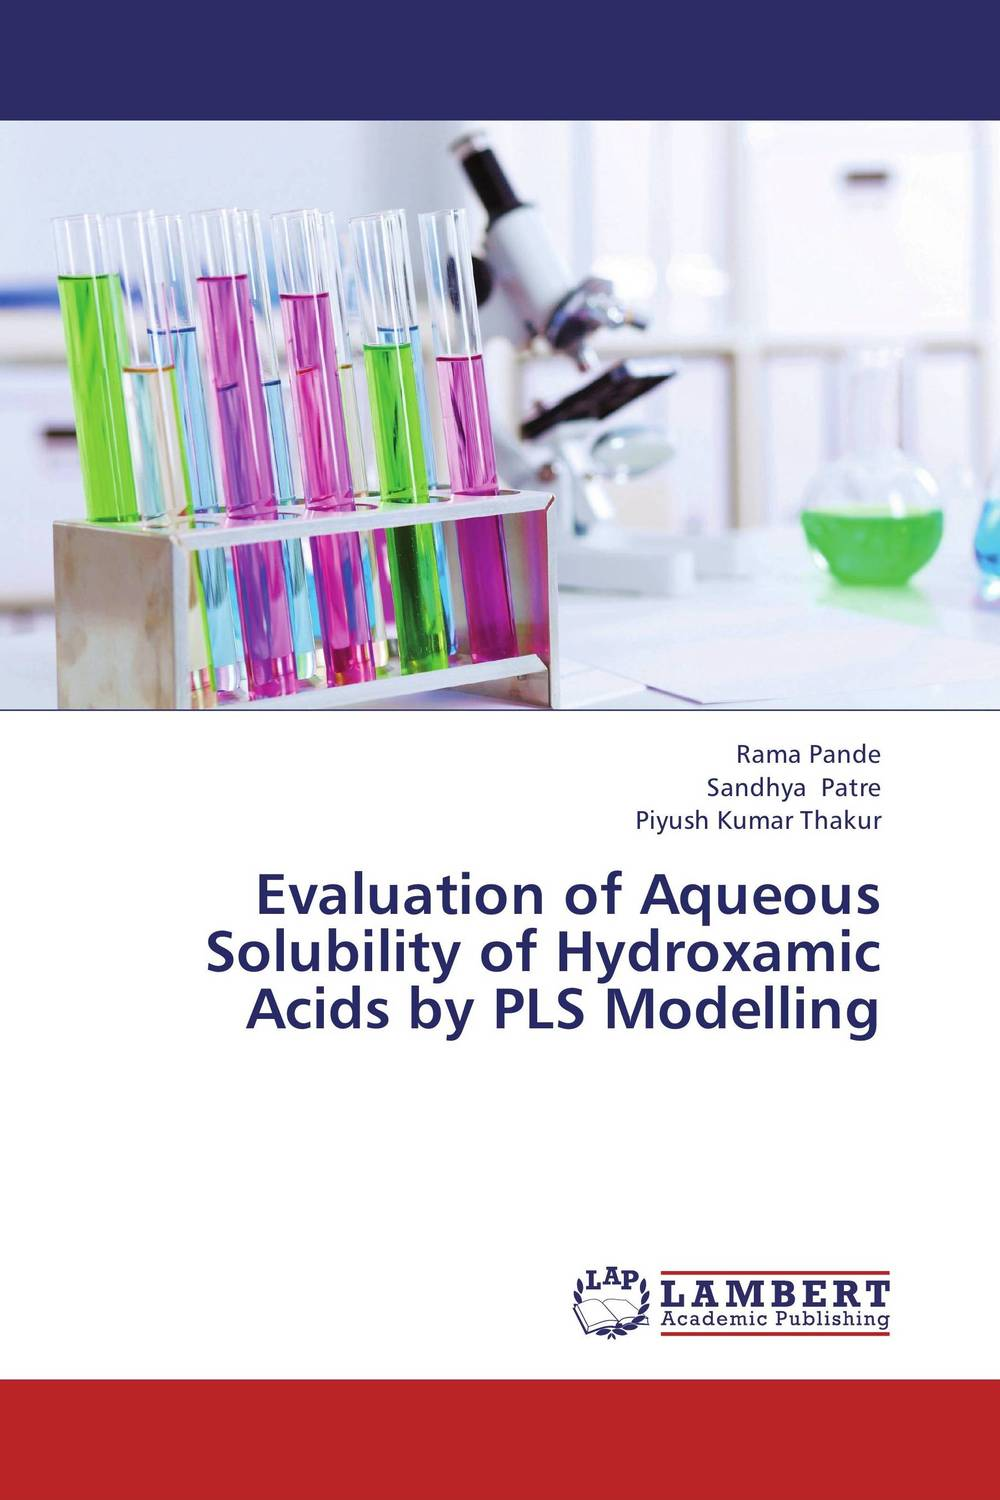 Evaluation of Aqueous Solubility of Hydroxamic Acids by PLS Modelling evaluation of pile failure mechanism by piv method